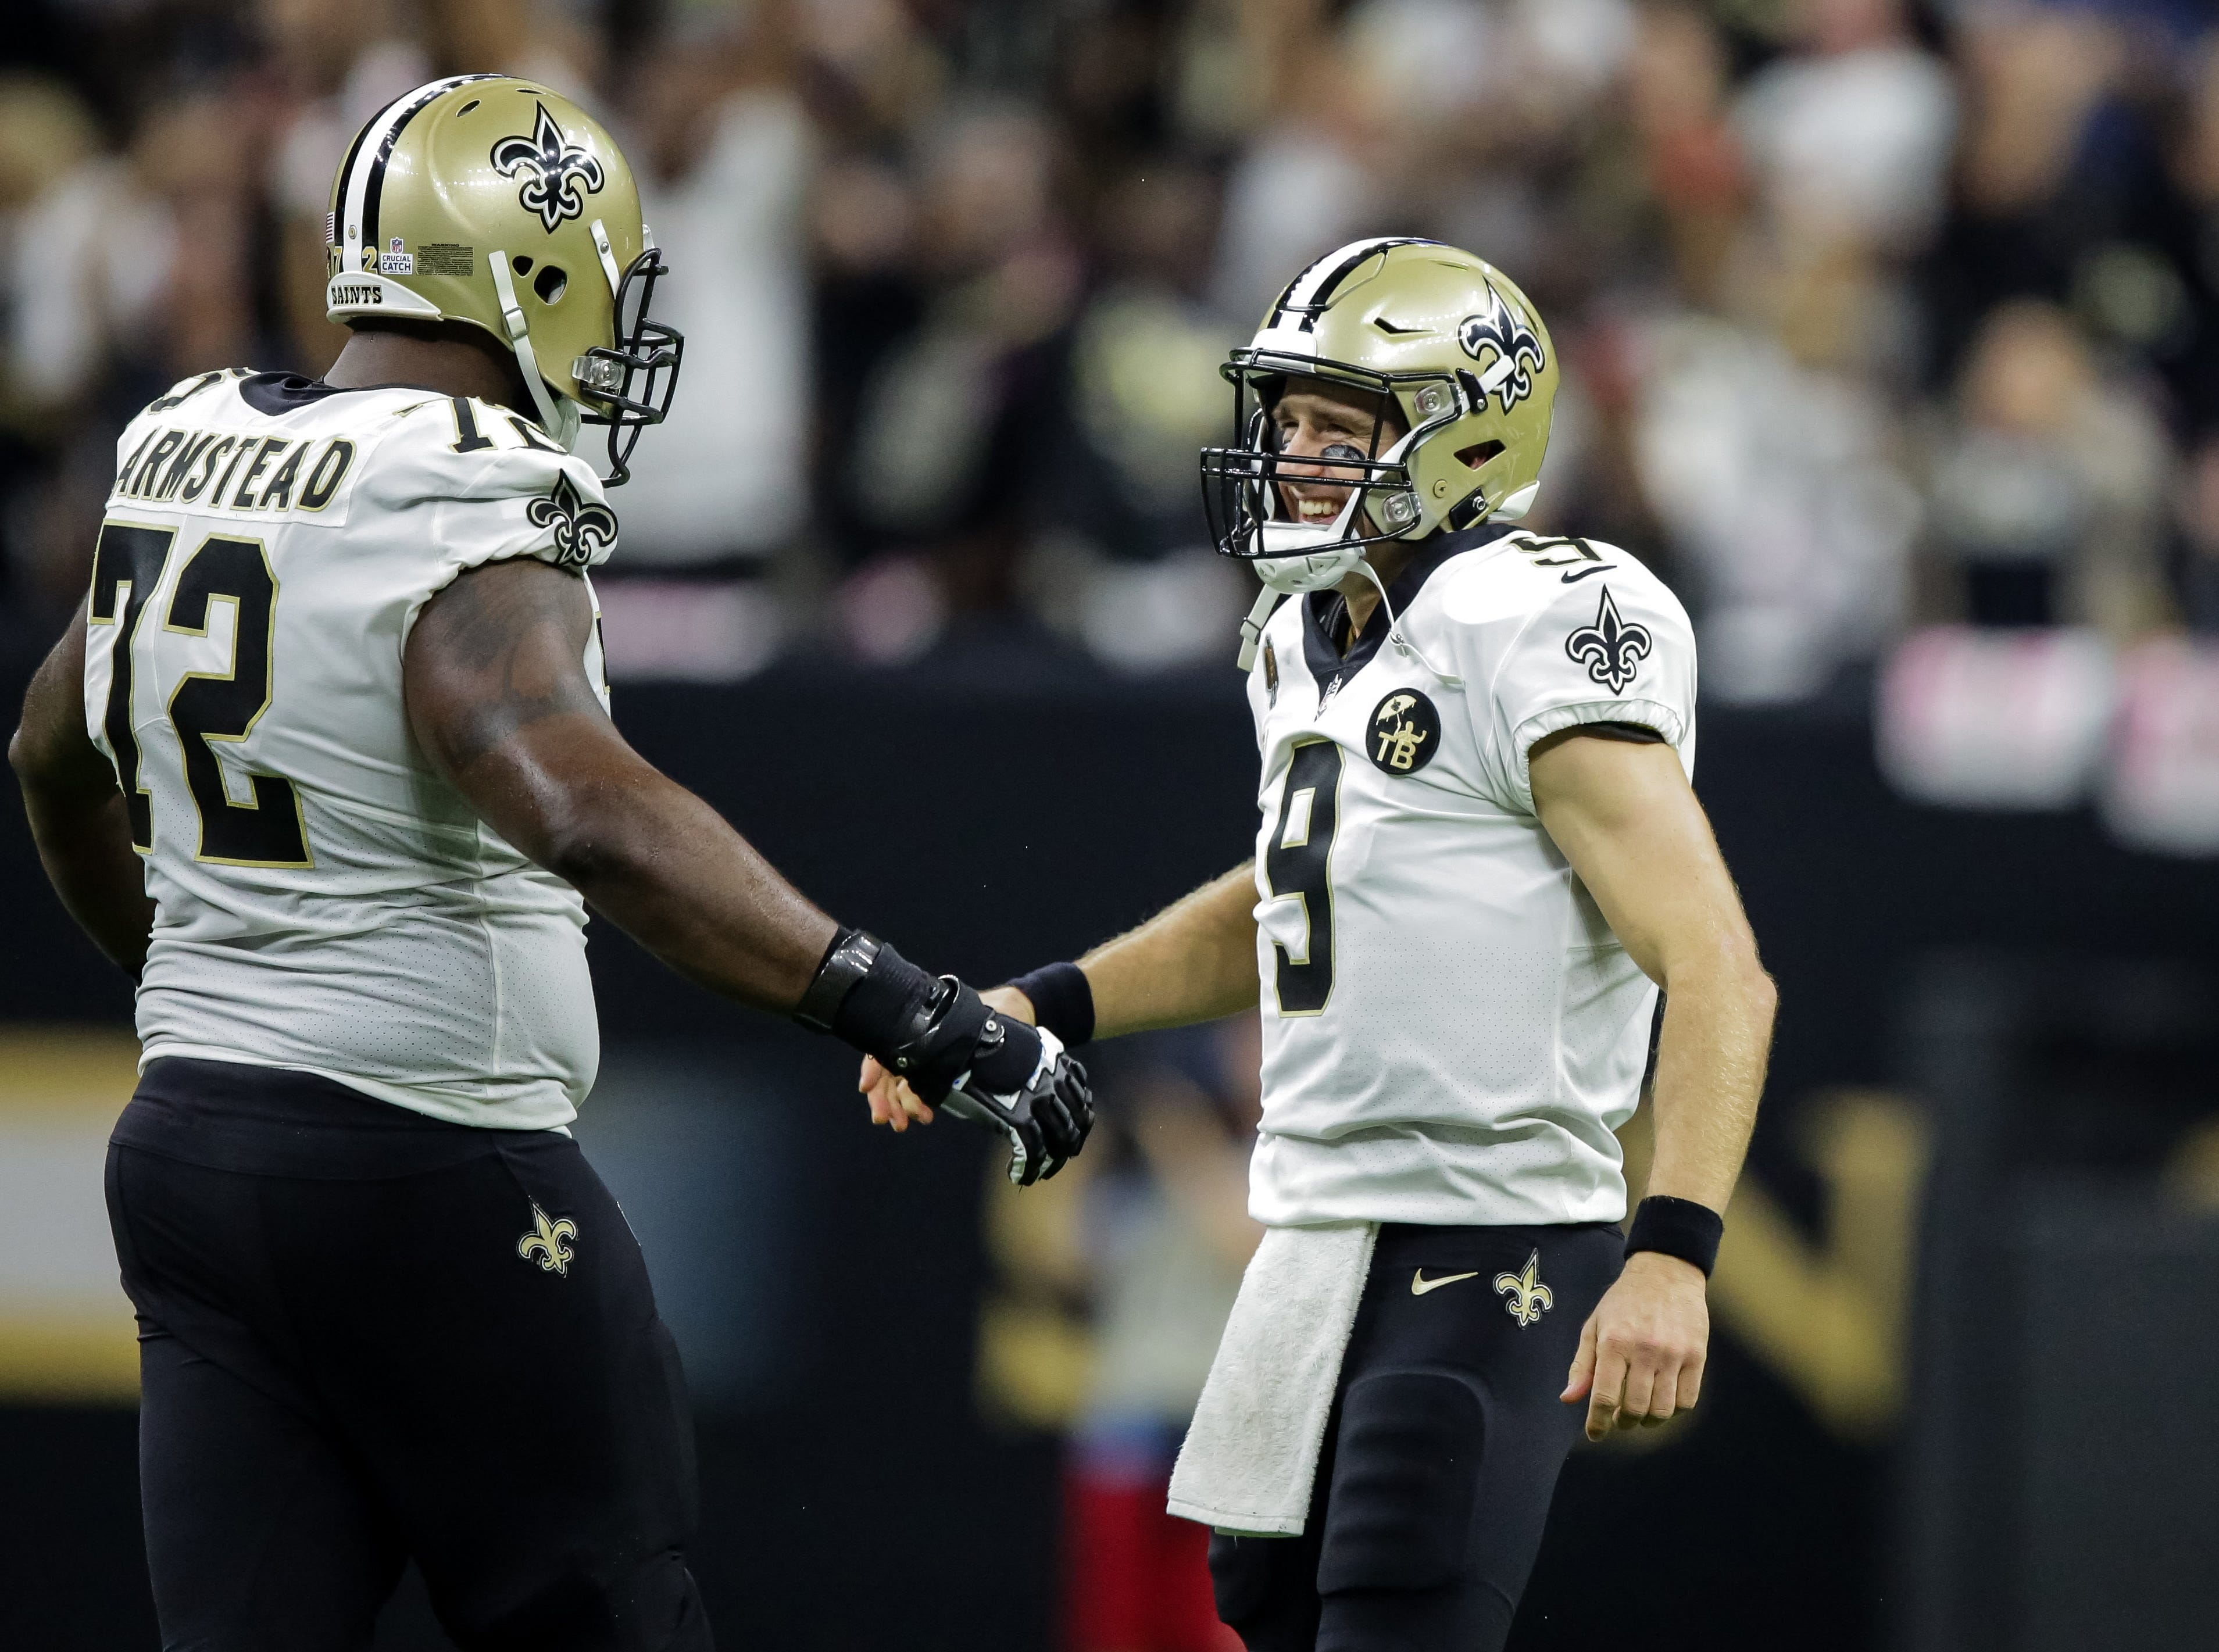 Oct 8, 2018; New Orleans, LA, USA; New Orleans Saints quarterback Drew Brees (9) celebrates with offensive tackle Terron Armstead (72) after setting the NFL record for passing yardage during the second quarter against the Washington Redskins at the Mercedes-Benz Superdome.